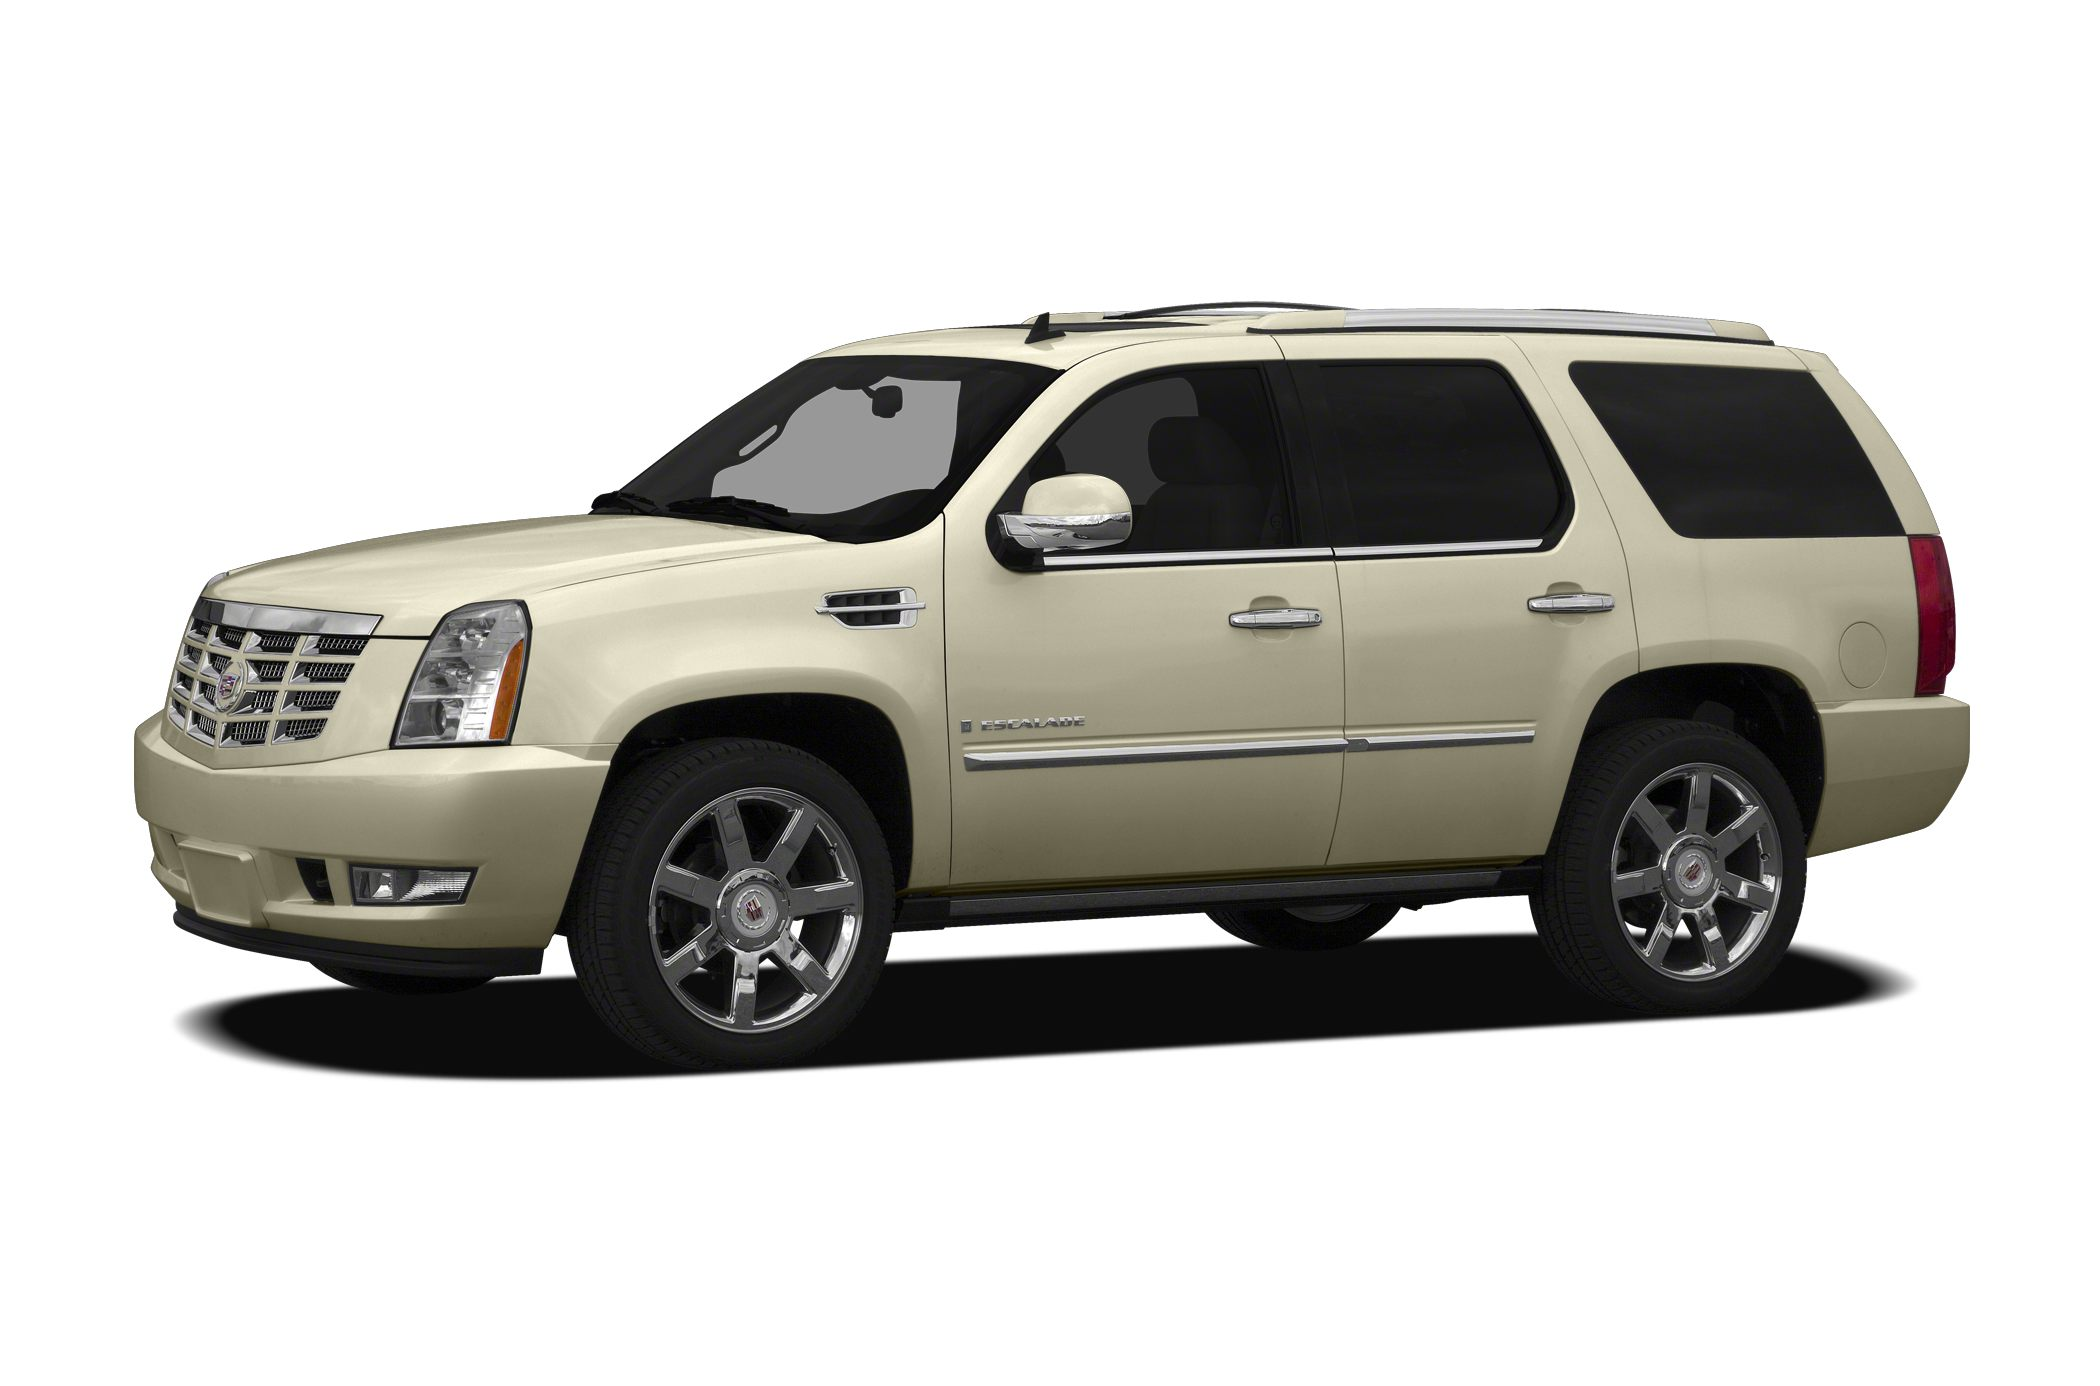 2010 Cadillac Escalade Premium SUV for sale in Indianapolis for $38,987 with 55,025 miles.